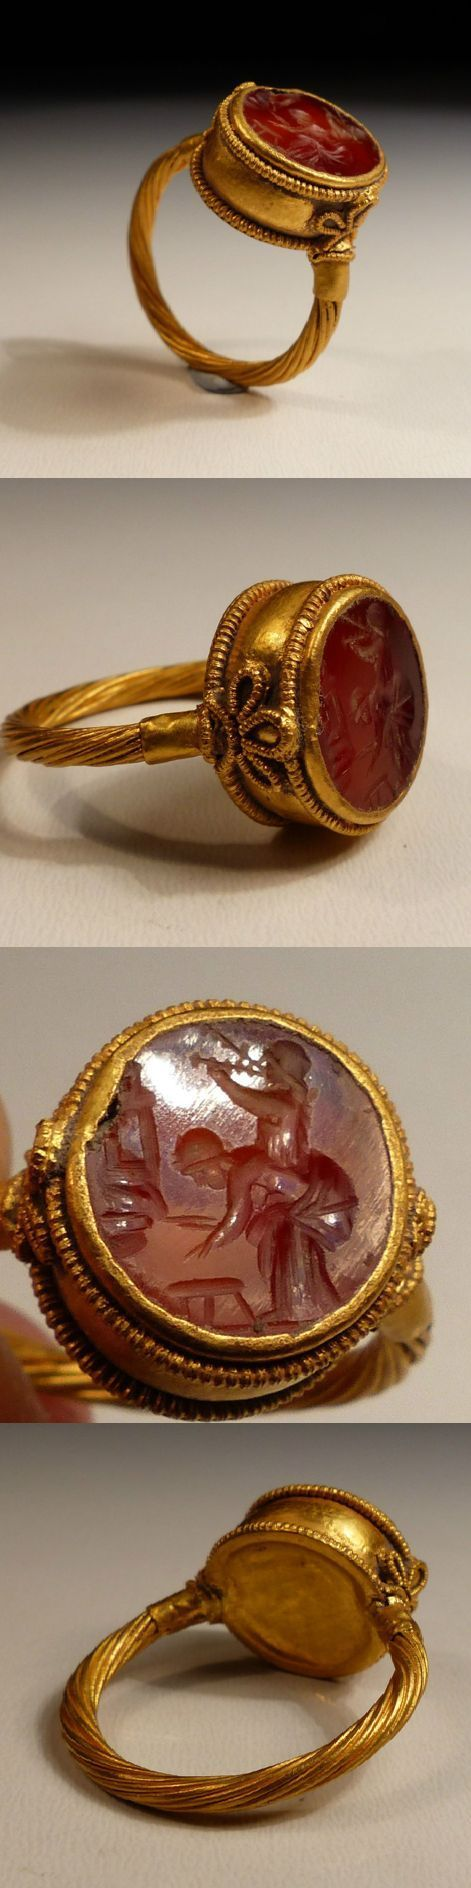 Roman Gold Ring, comprising of a band crafted with twisted gold strands representing a torque supporting a deep circular bezel decorated with fine filigree, set with a beautifully carved carnelian intaglio, dating to the 2nd/3rd Century AD